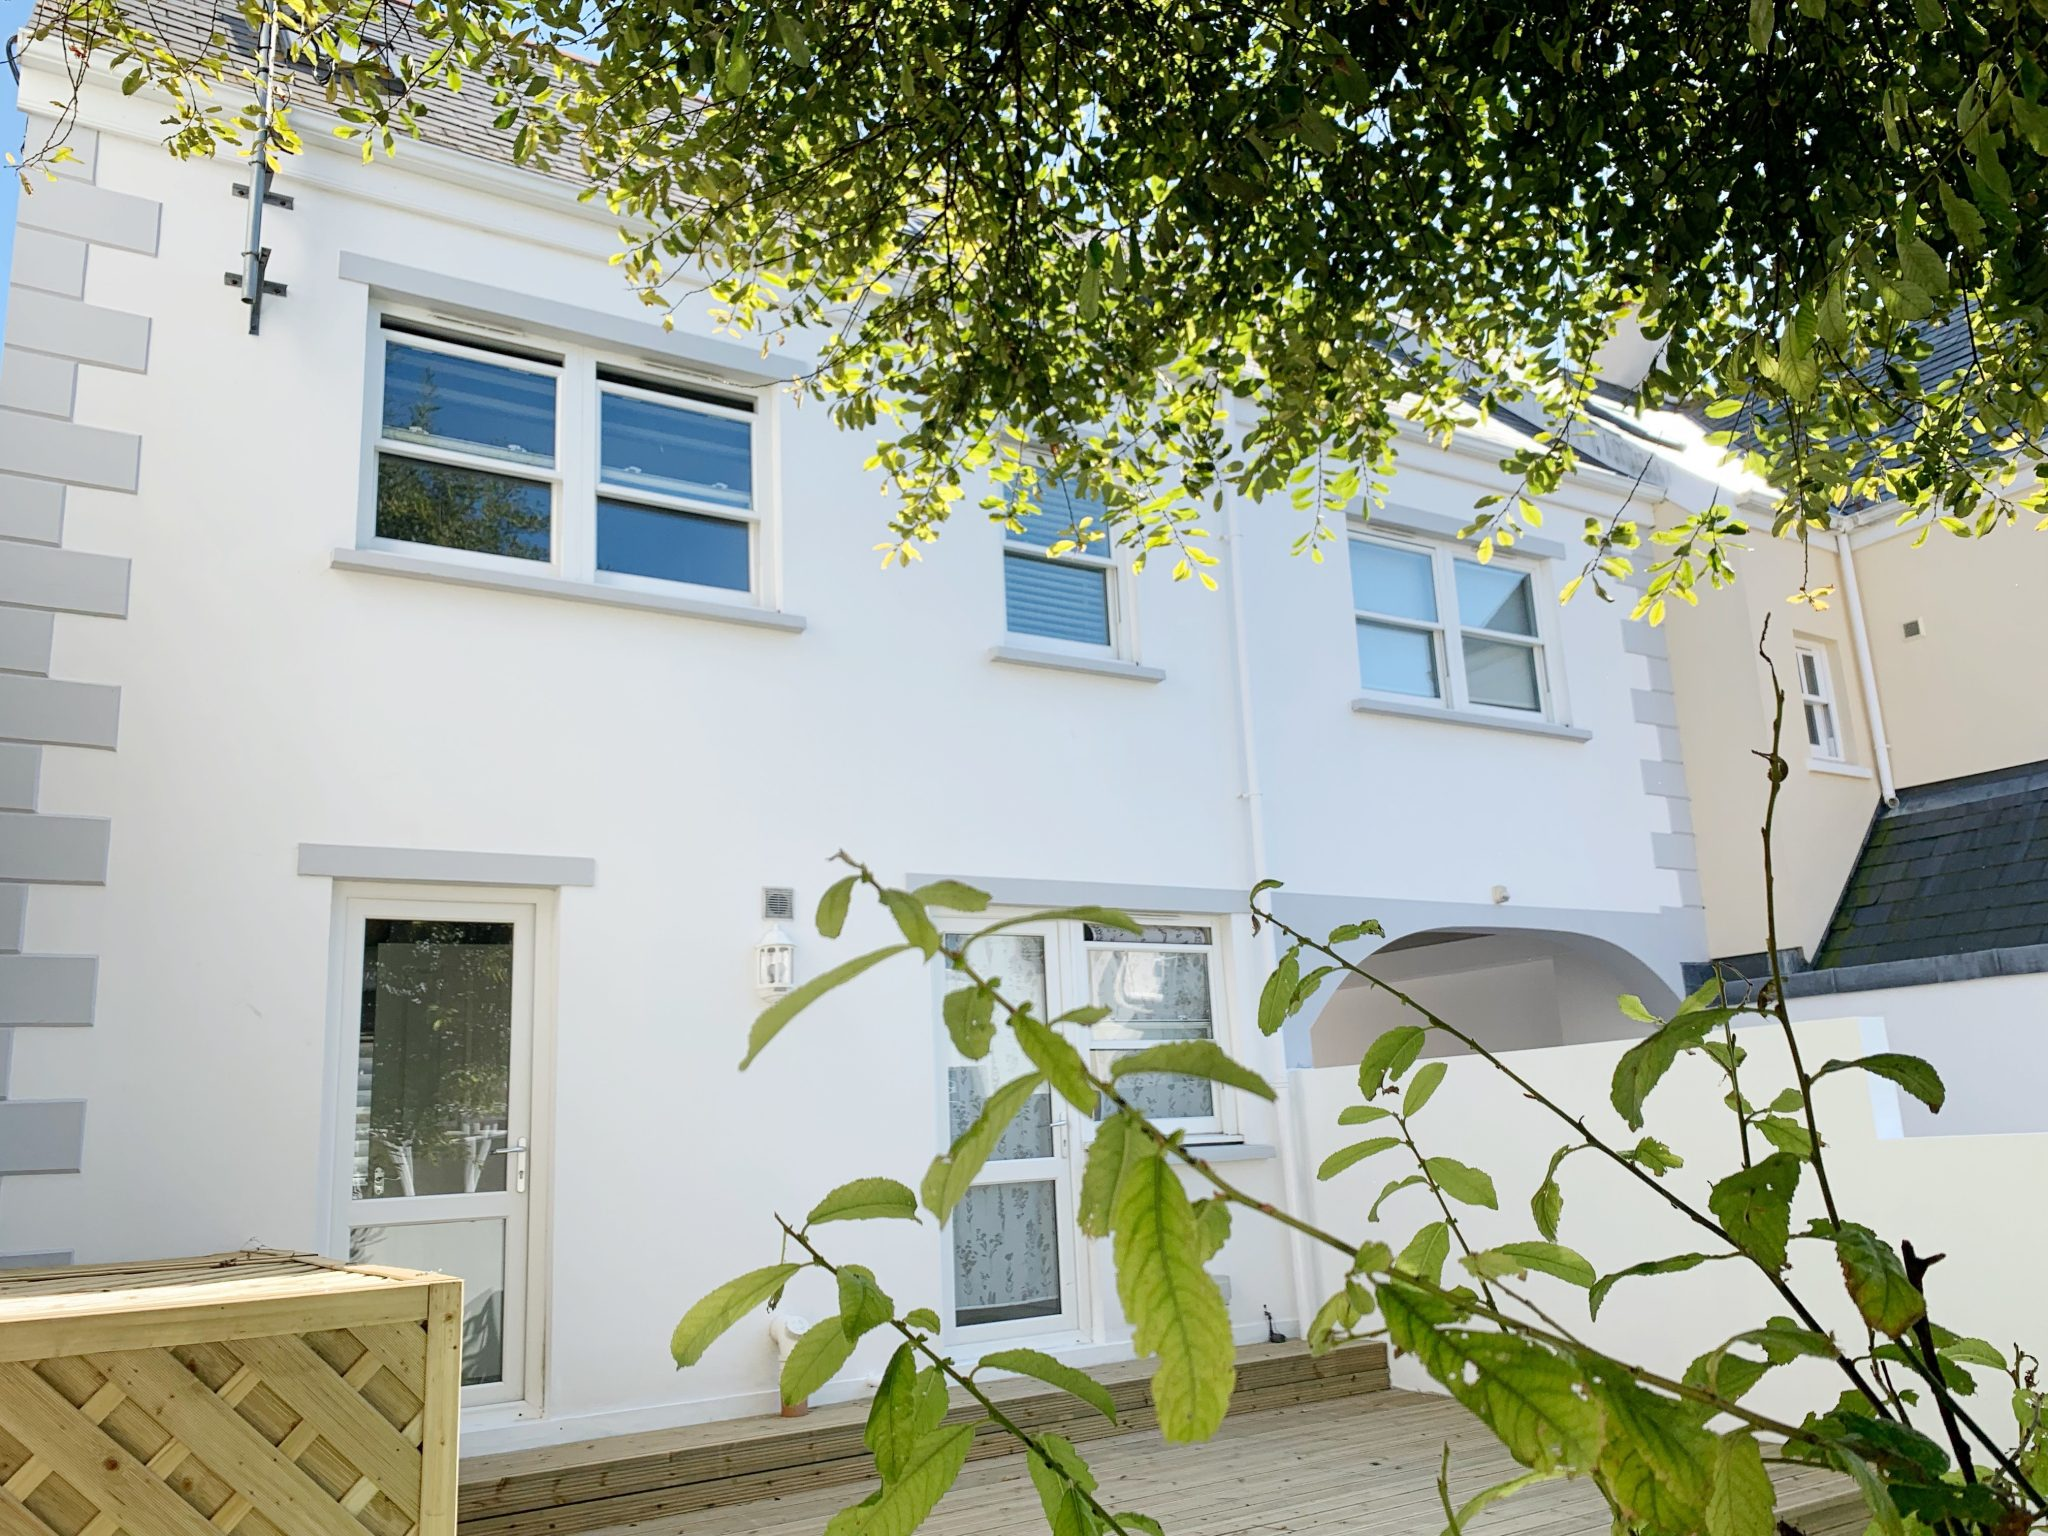 4/5 Bedroom 3 Story Town House With Garden & Parking